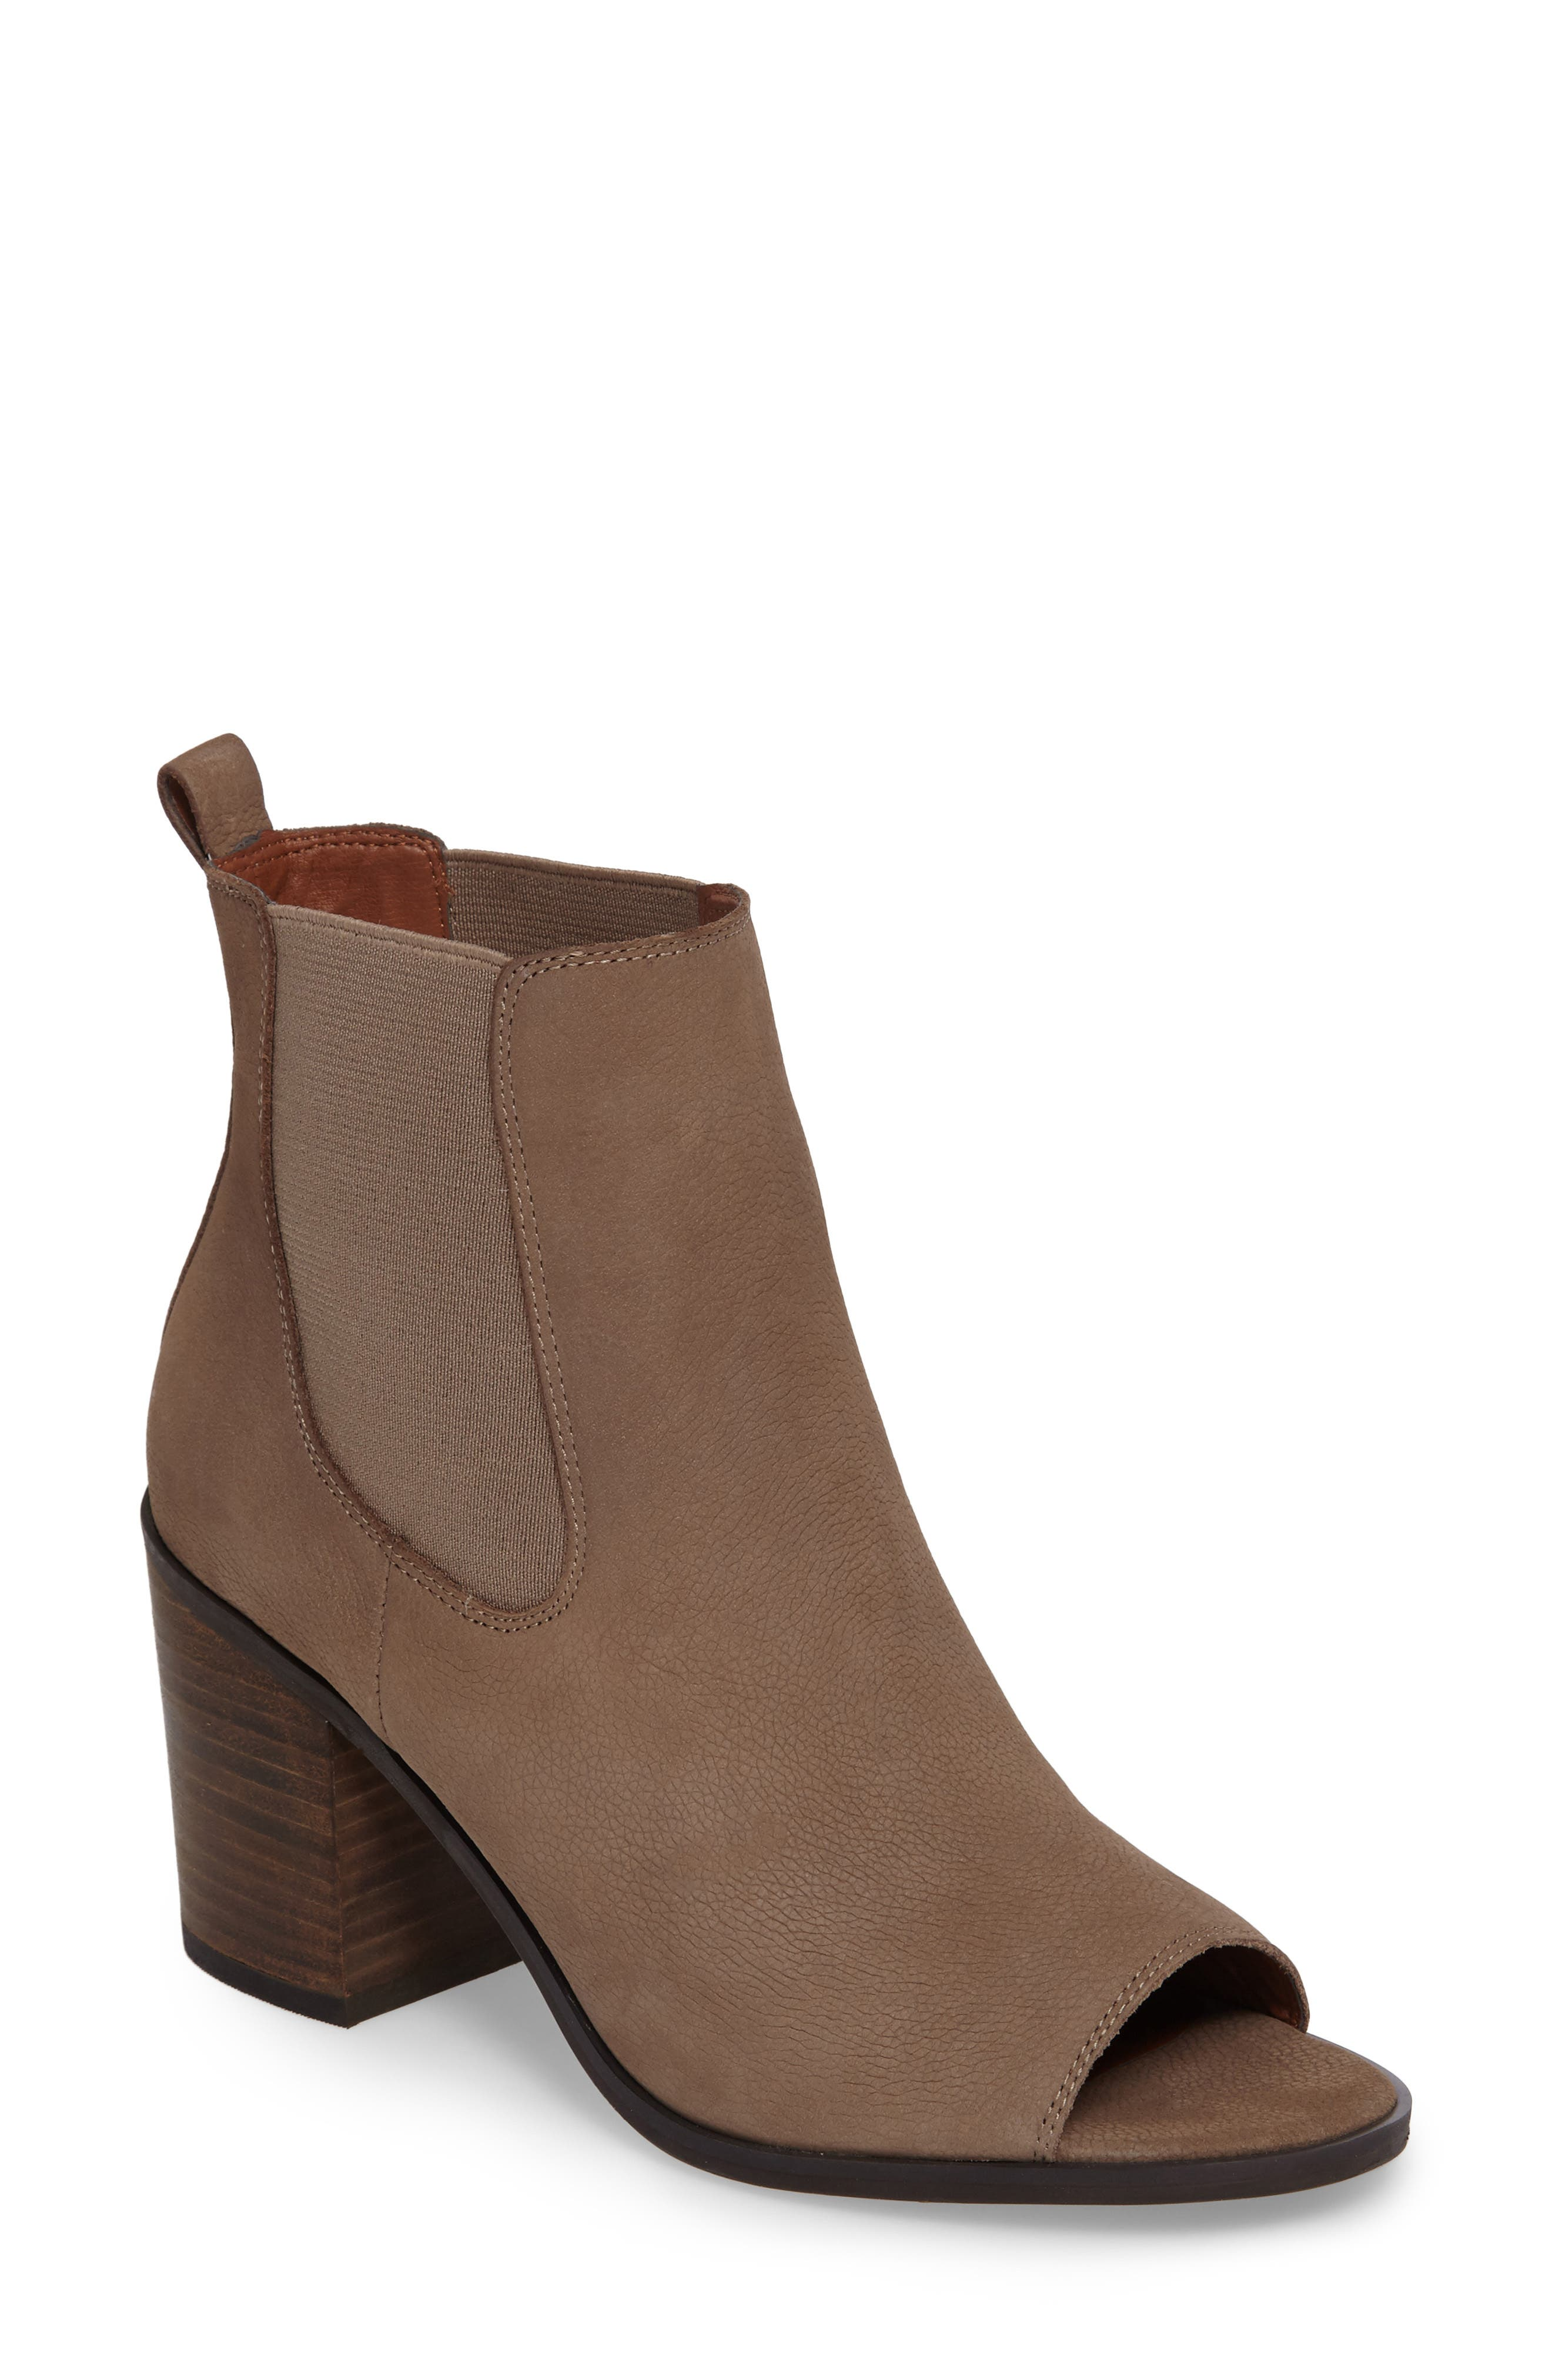 Alternate Image 1 Selected - Lucky Brand Kassidy Open Toe Chelsea Bootie (Women)